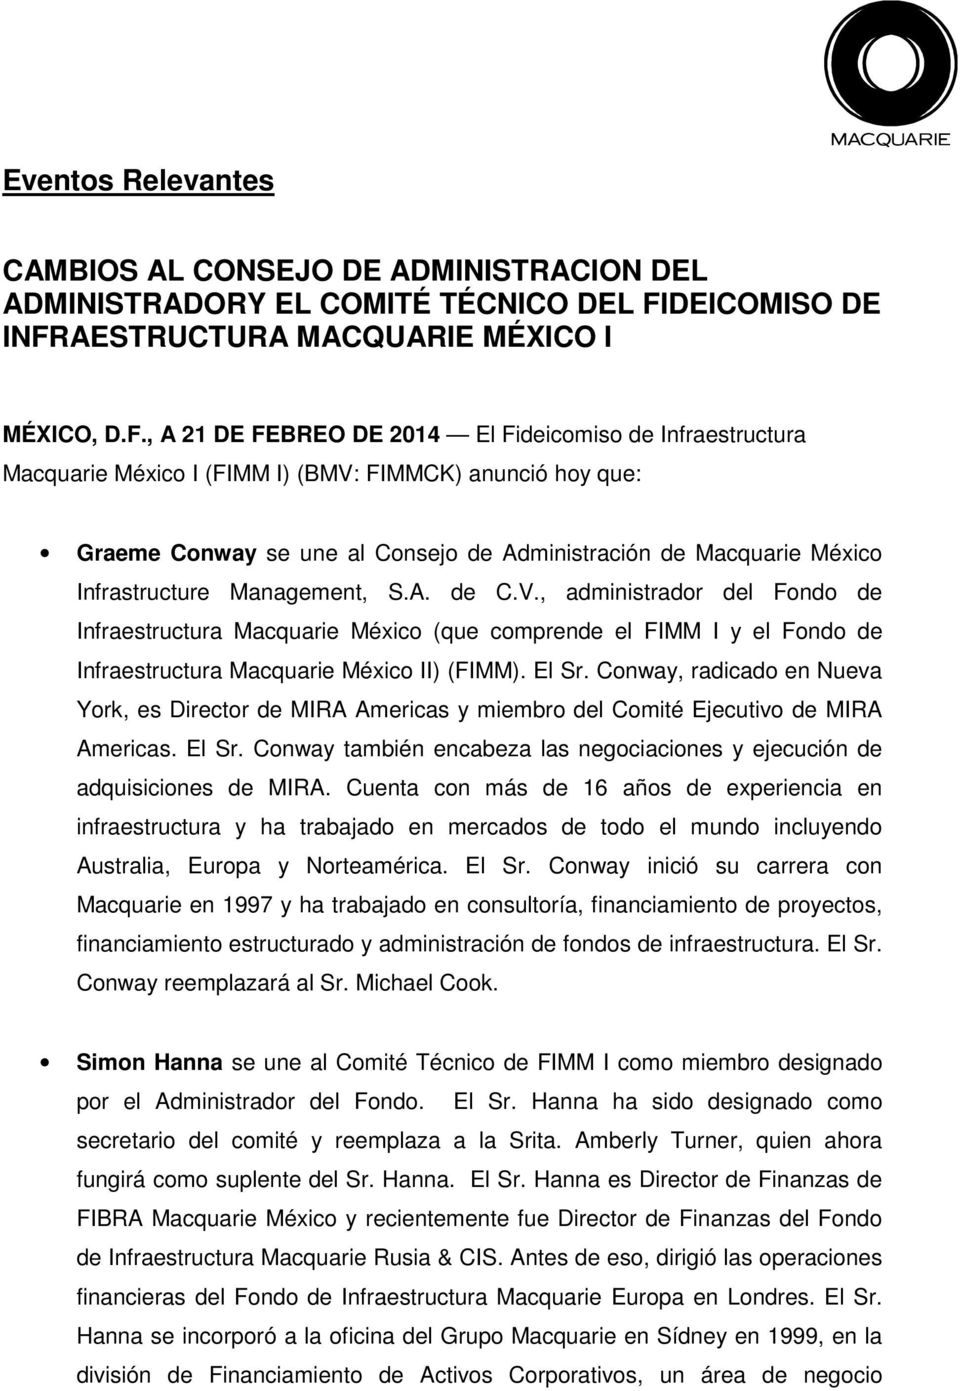 AESTRUCTURA MACQUARIE MÉXICO I MÉXICO, D.F.